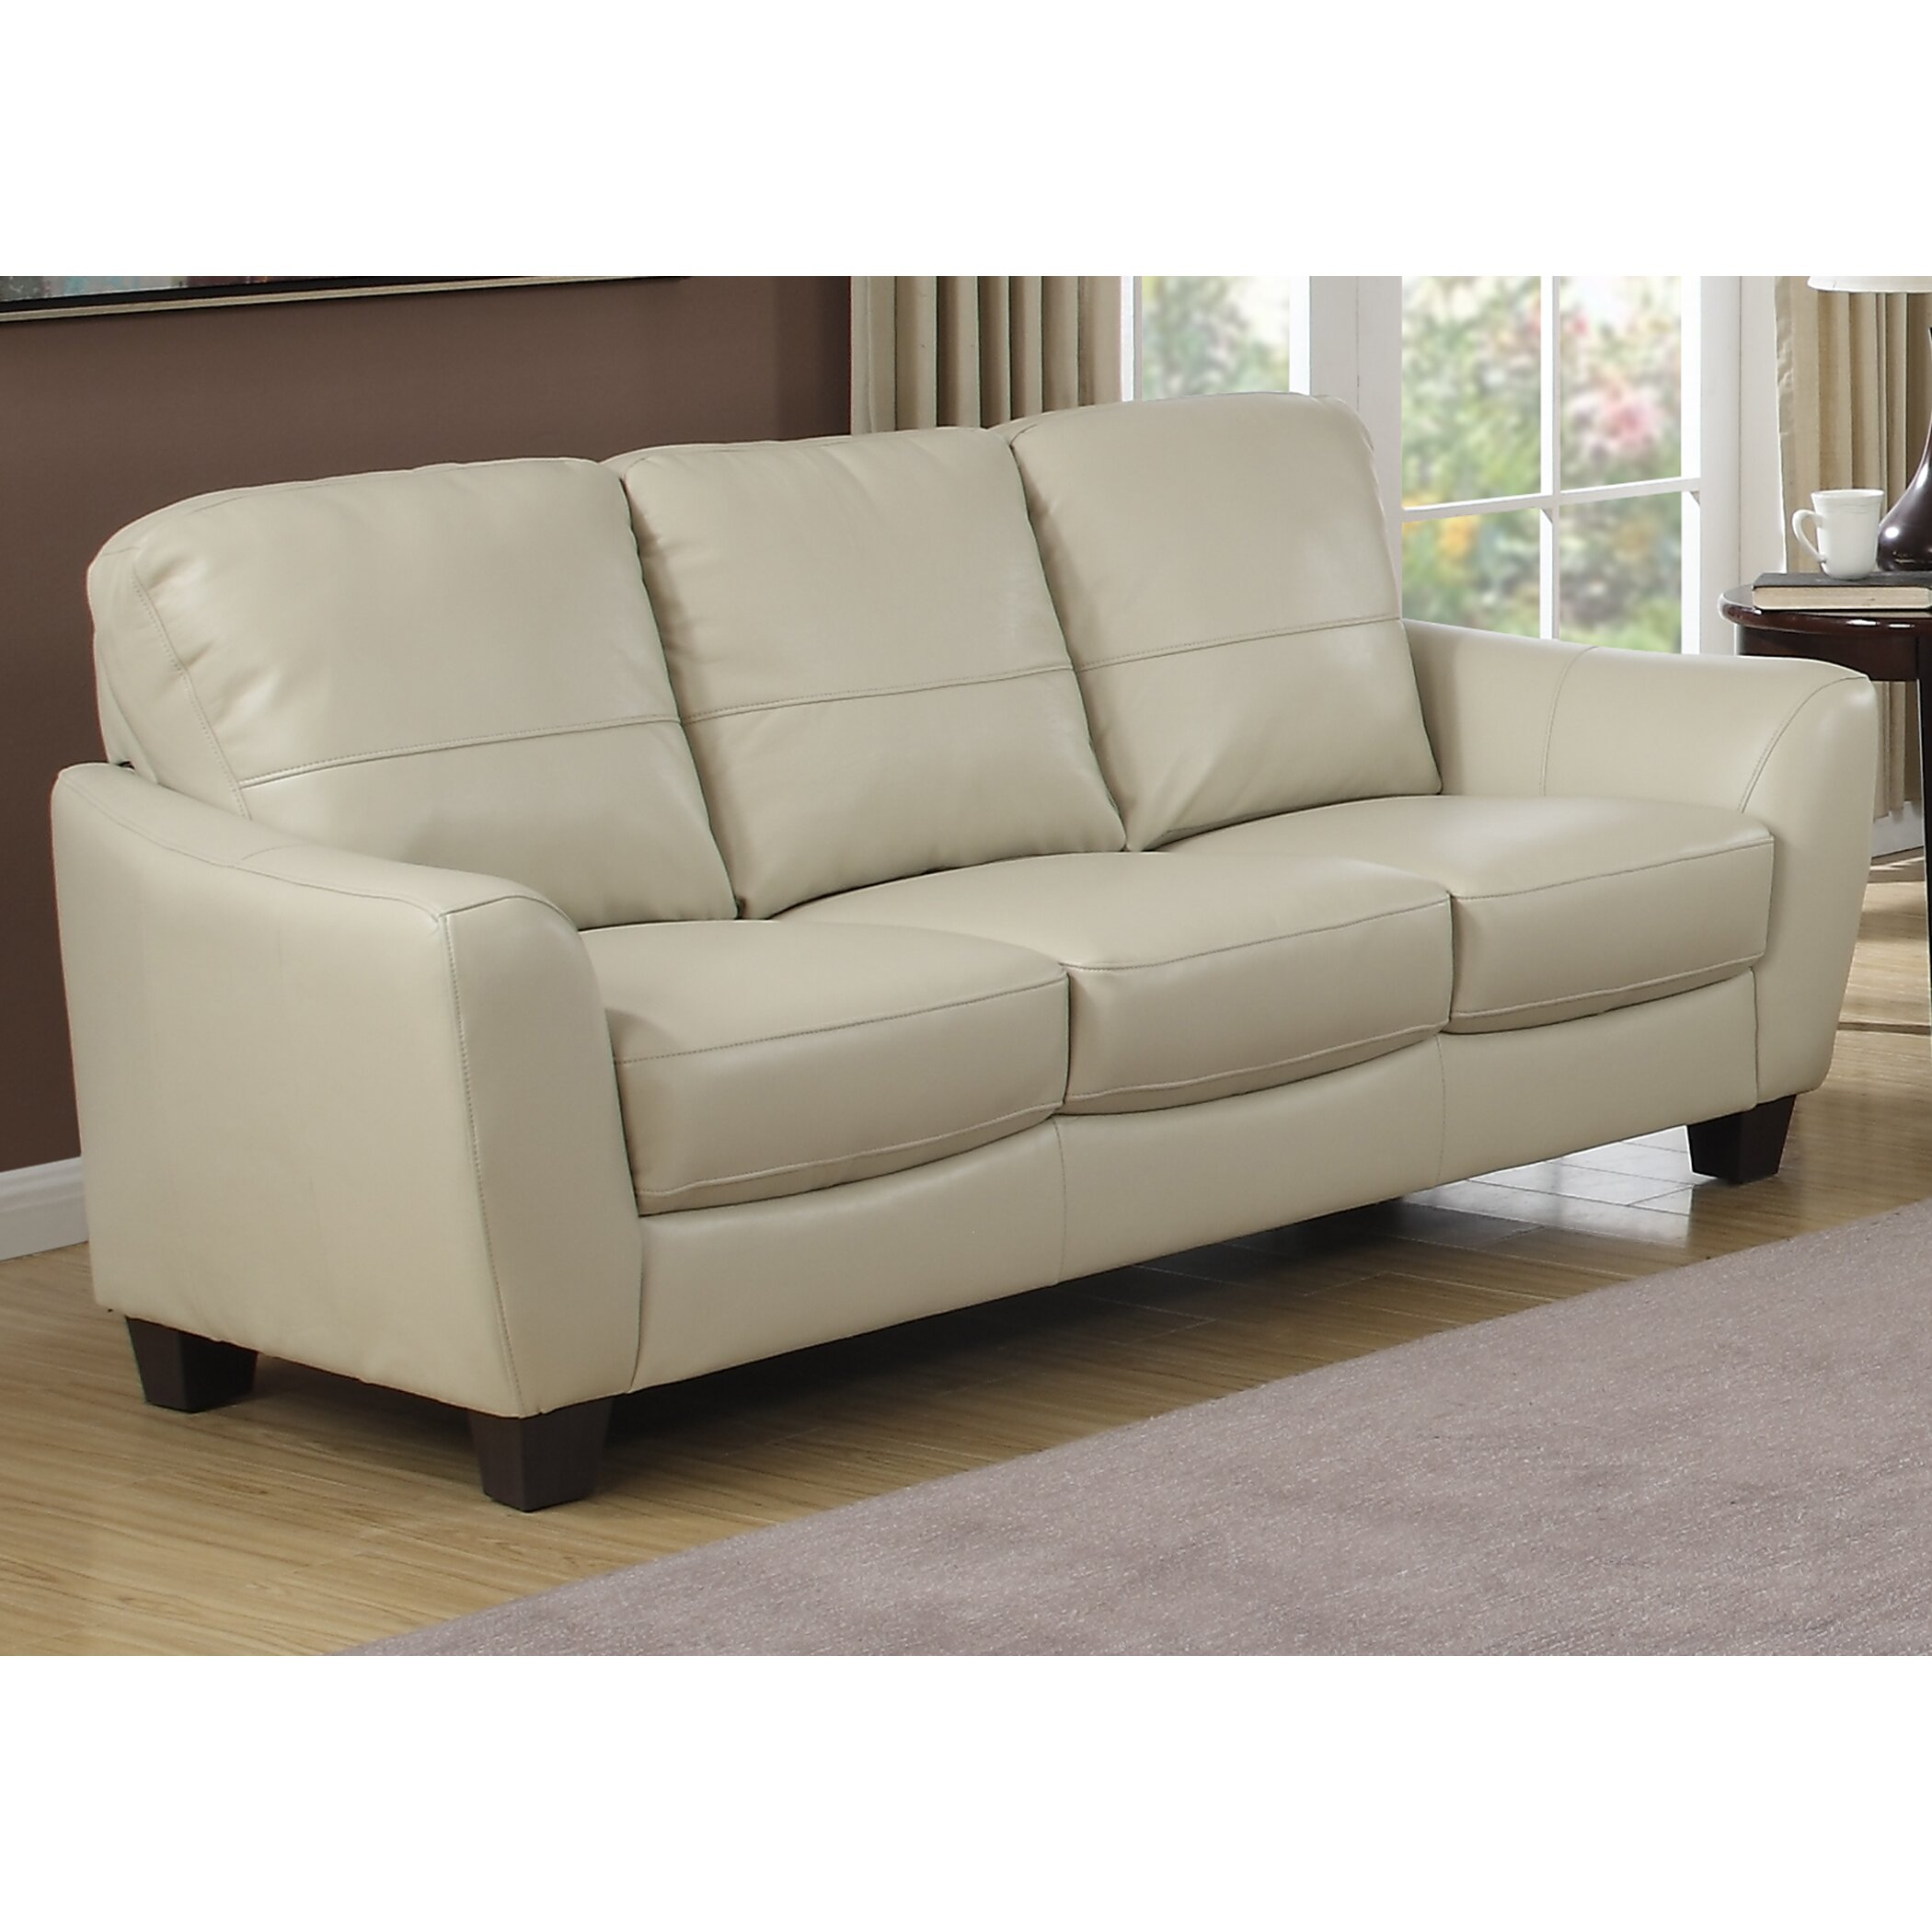 AC Pacific Sawyer Sofa and Loveseat Set & Reviews